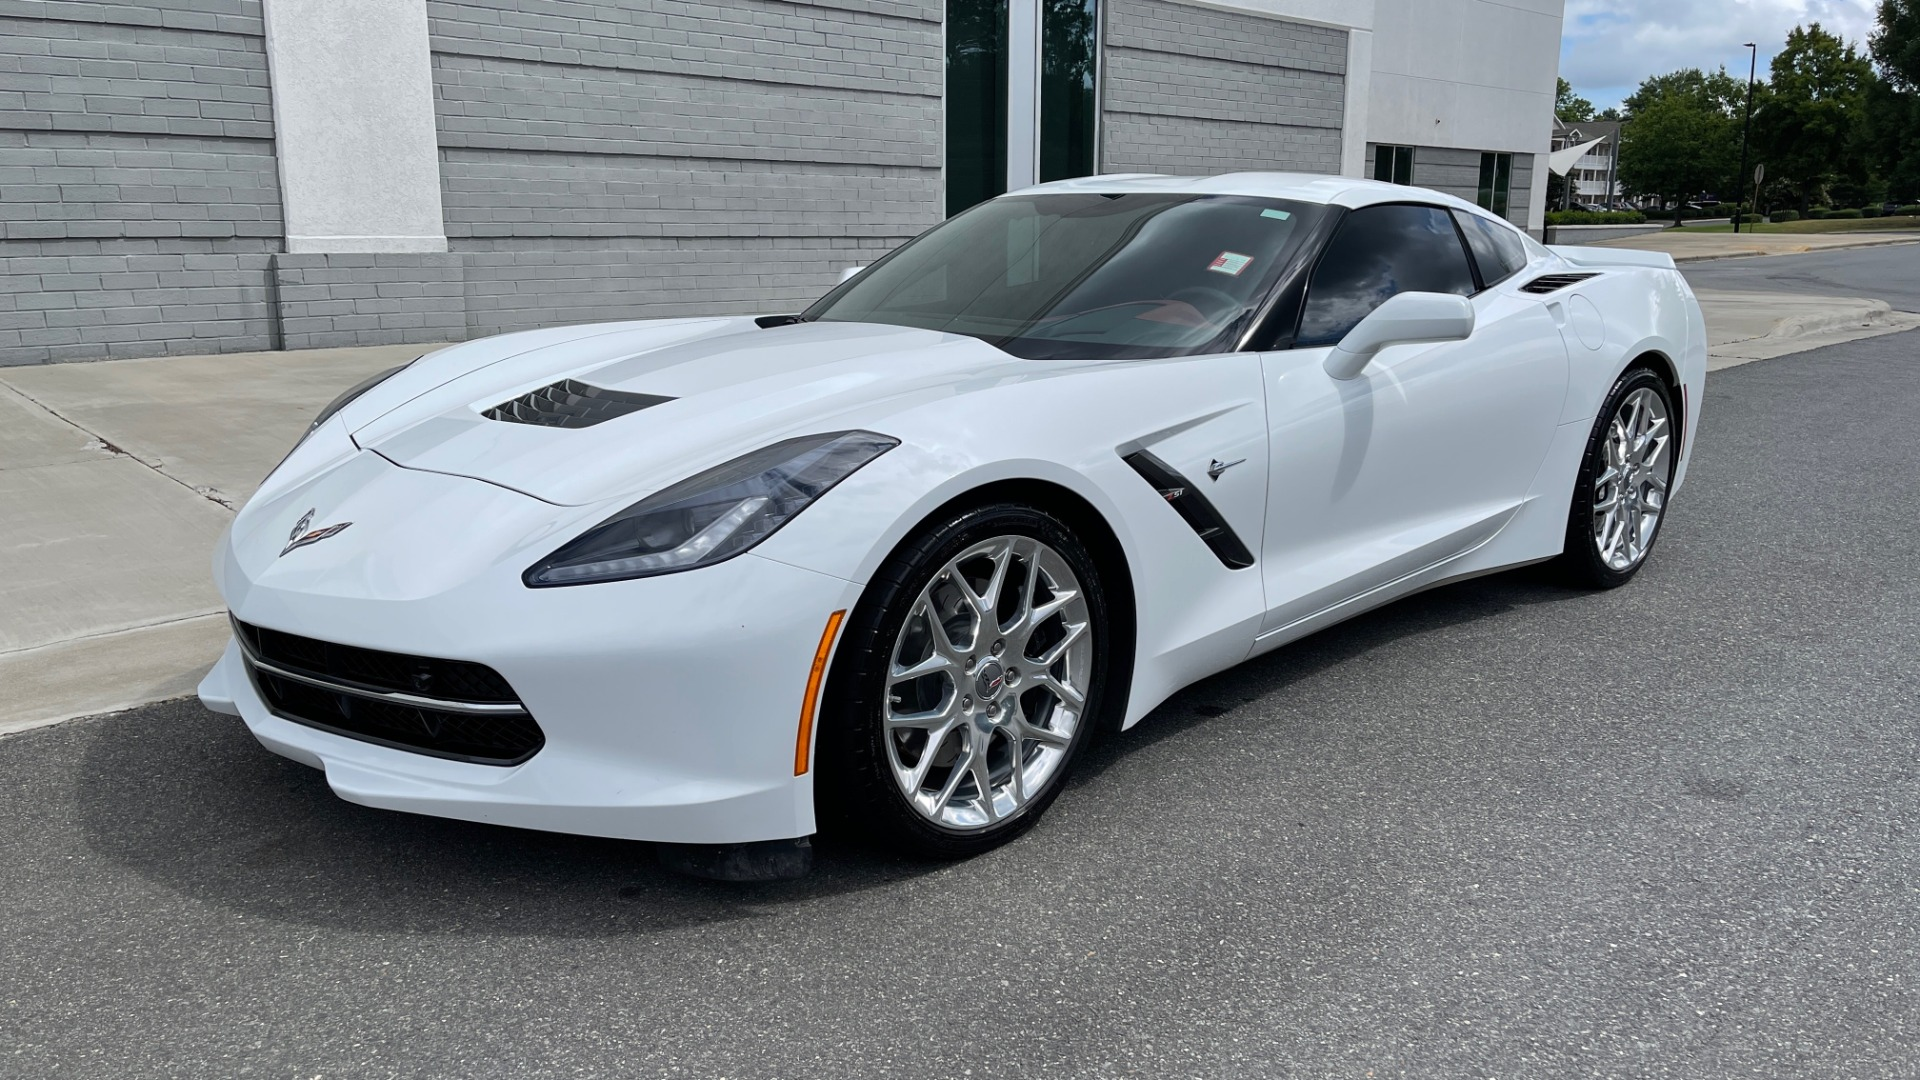 Used 2016 Chevrolet CORVETTE C7 STINGRAY COUPE Z51 3LT / NAV / PERF TRACTION MGMT / REARVIEW for sale Sold at Formula Imports in Charlotte NC 28227 4